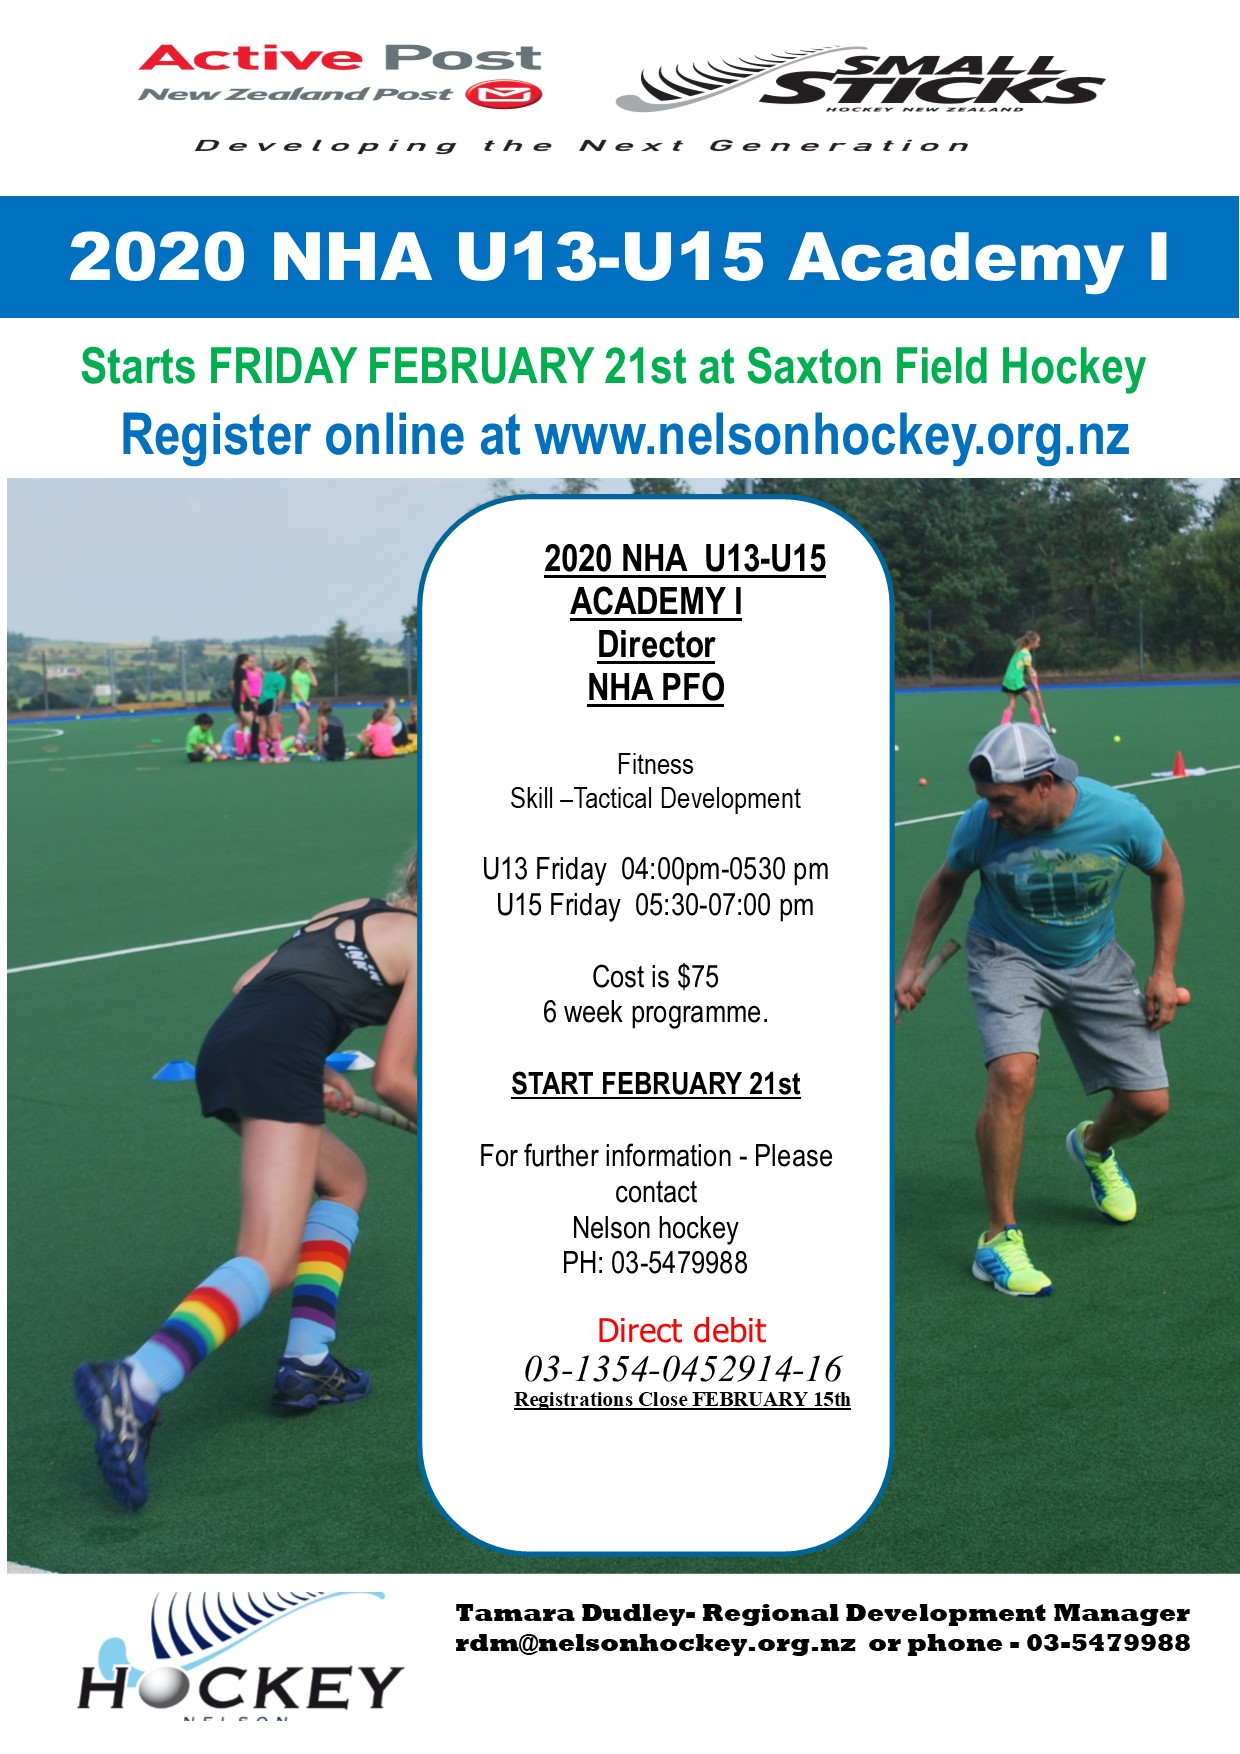 2020 U13-U15 ACADEMY Registrations Open!